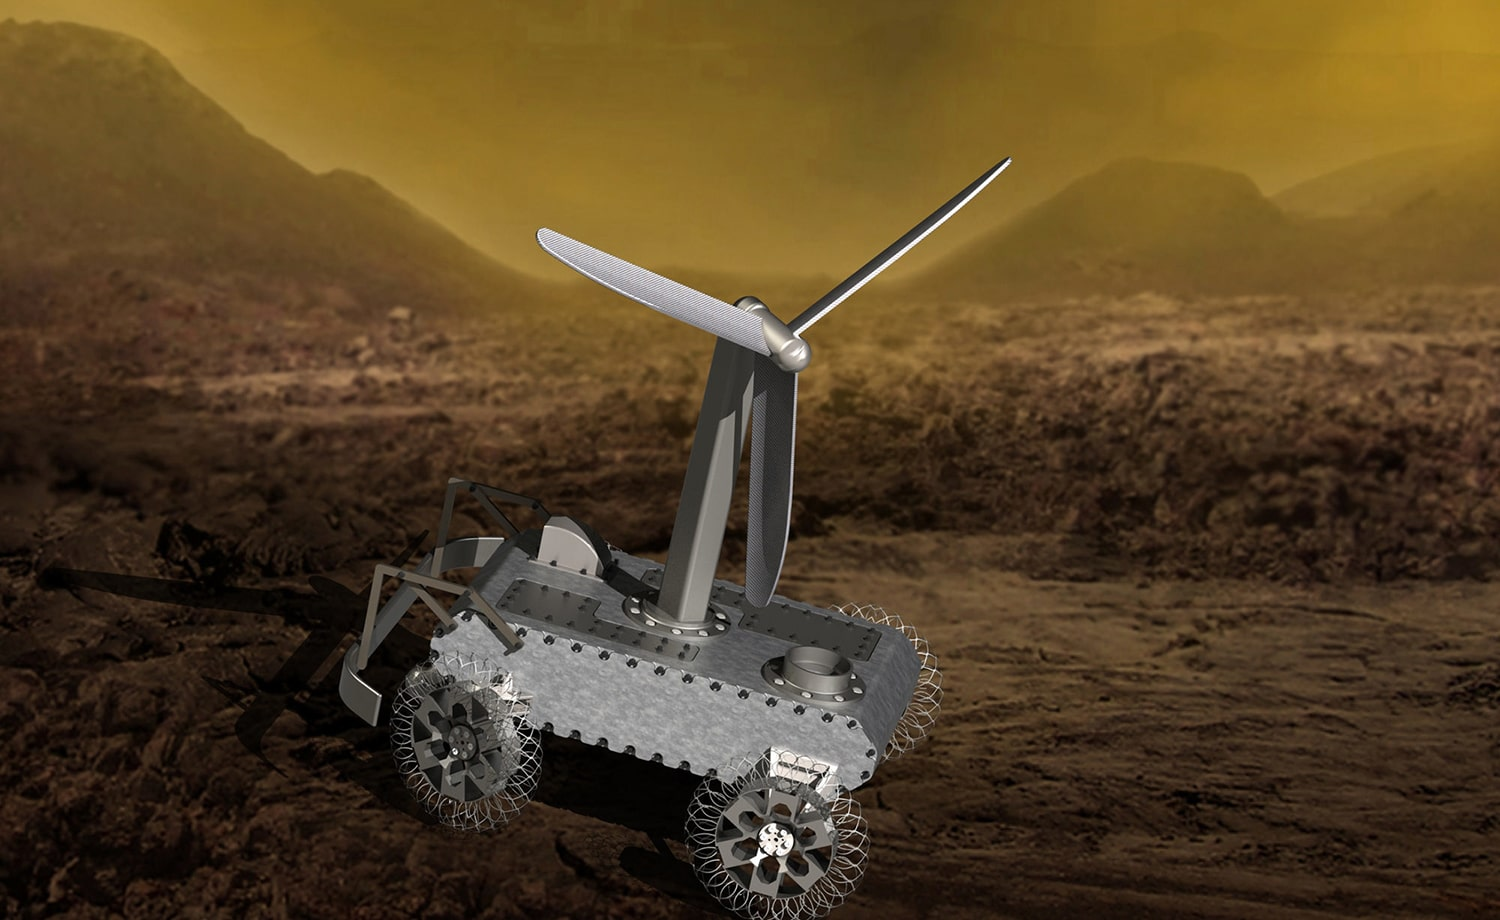 NASA asks enthusiasts to develop sensors for future Venus rover